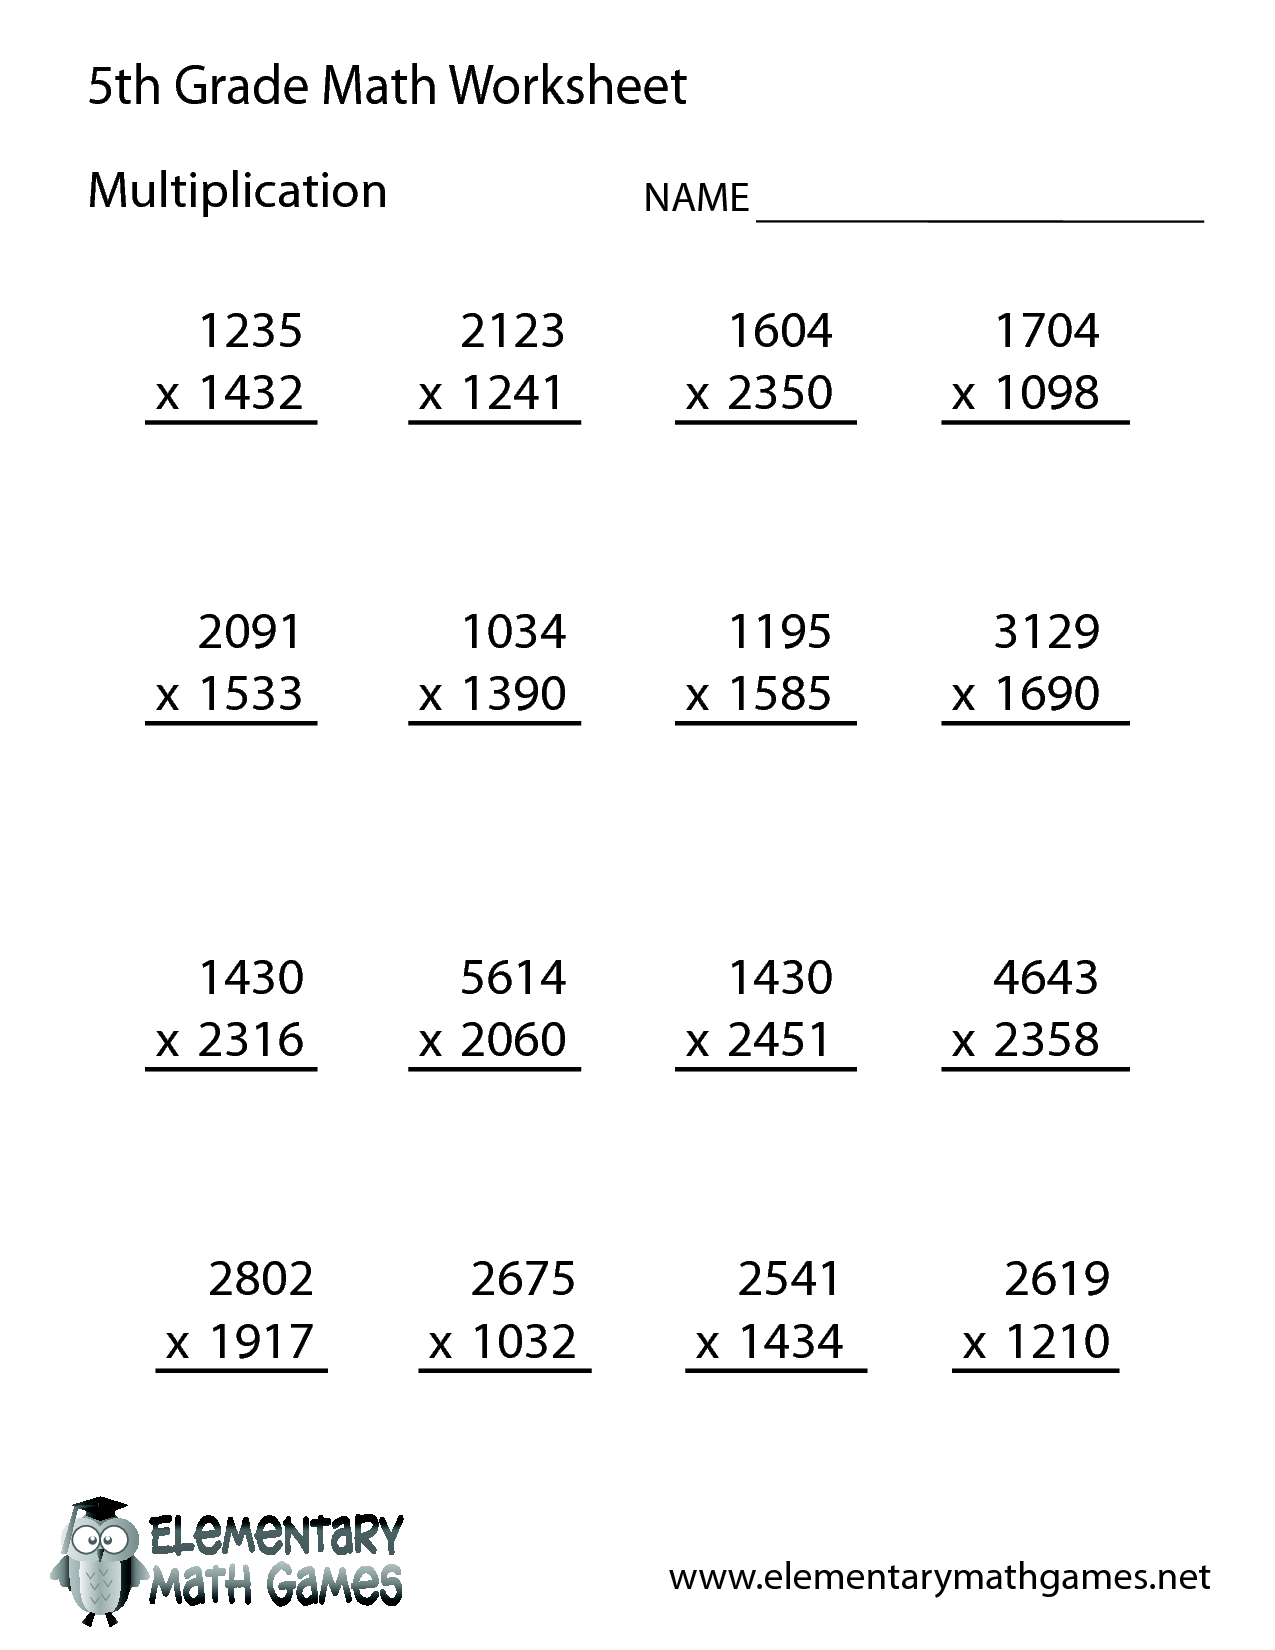 Uncategorized 5th Grade Math Worksheets Multiplication free math worksheets for 5th grade worksheet worksheet